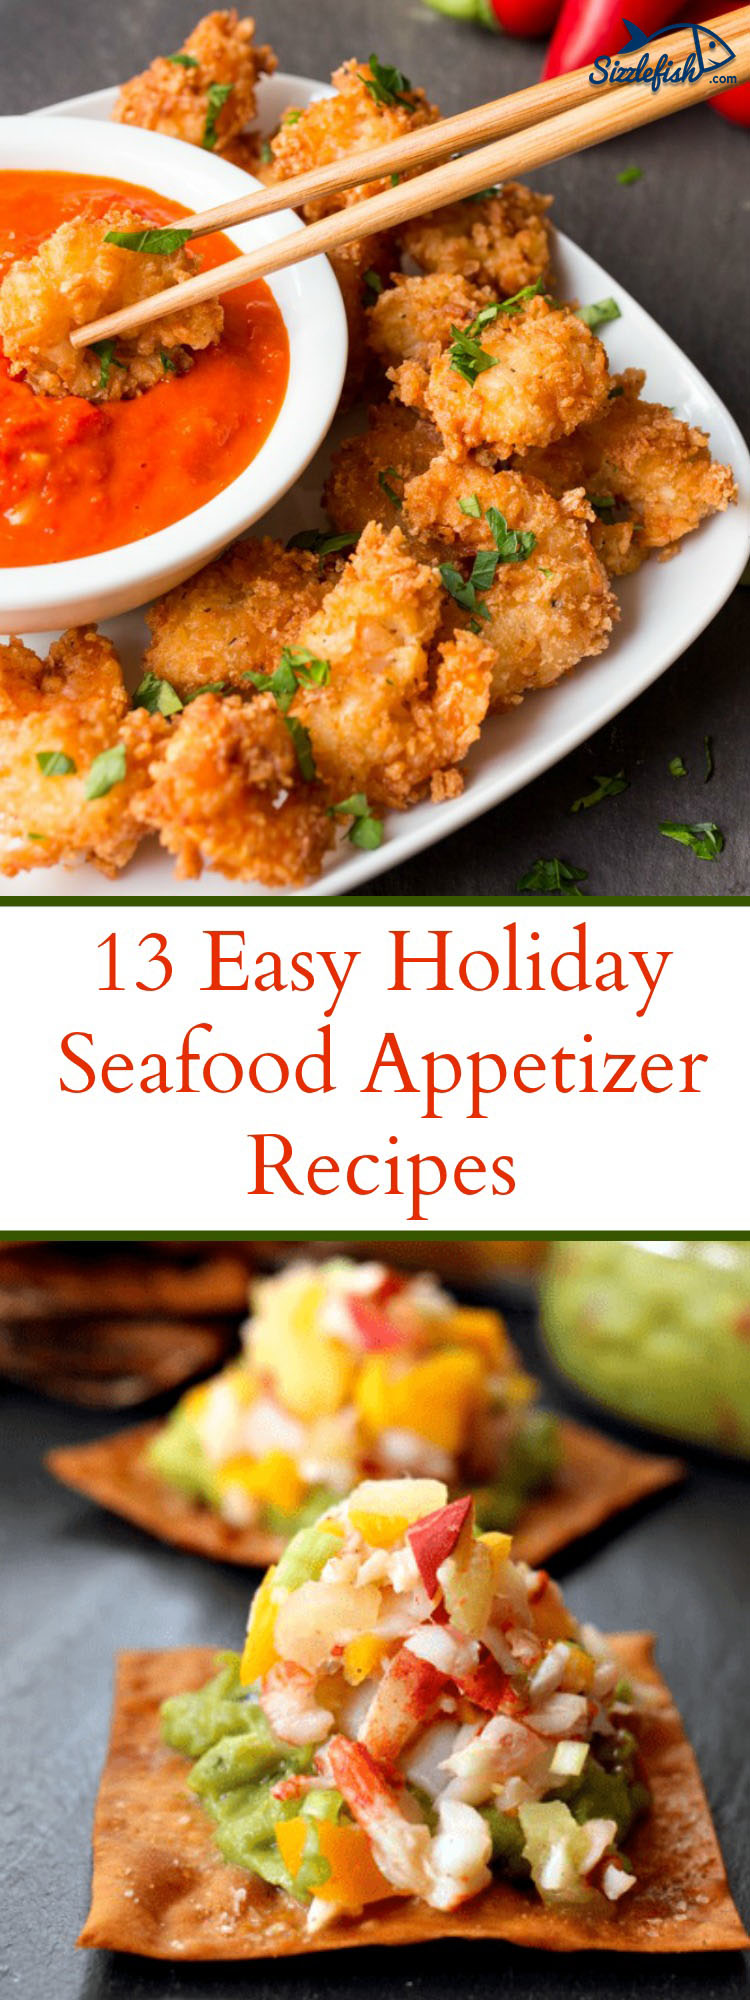 Easy Holiday Seafood Recipes